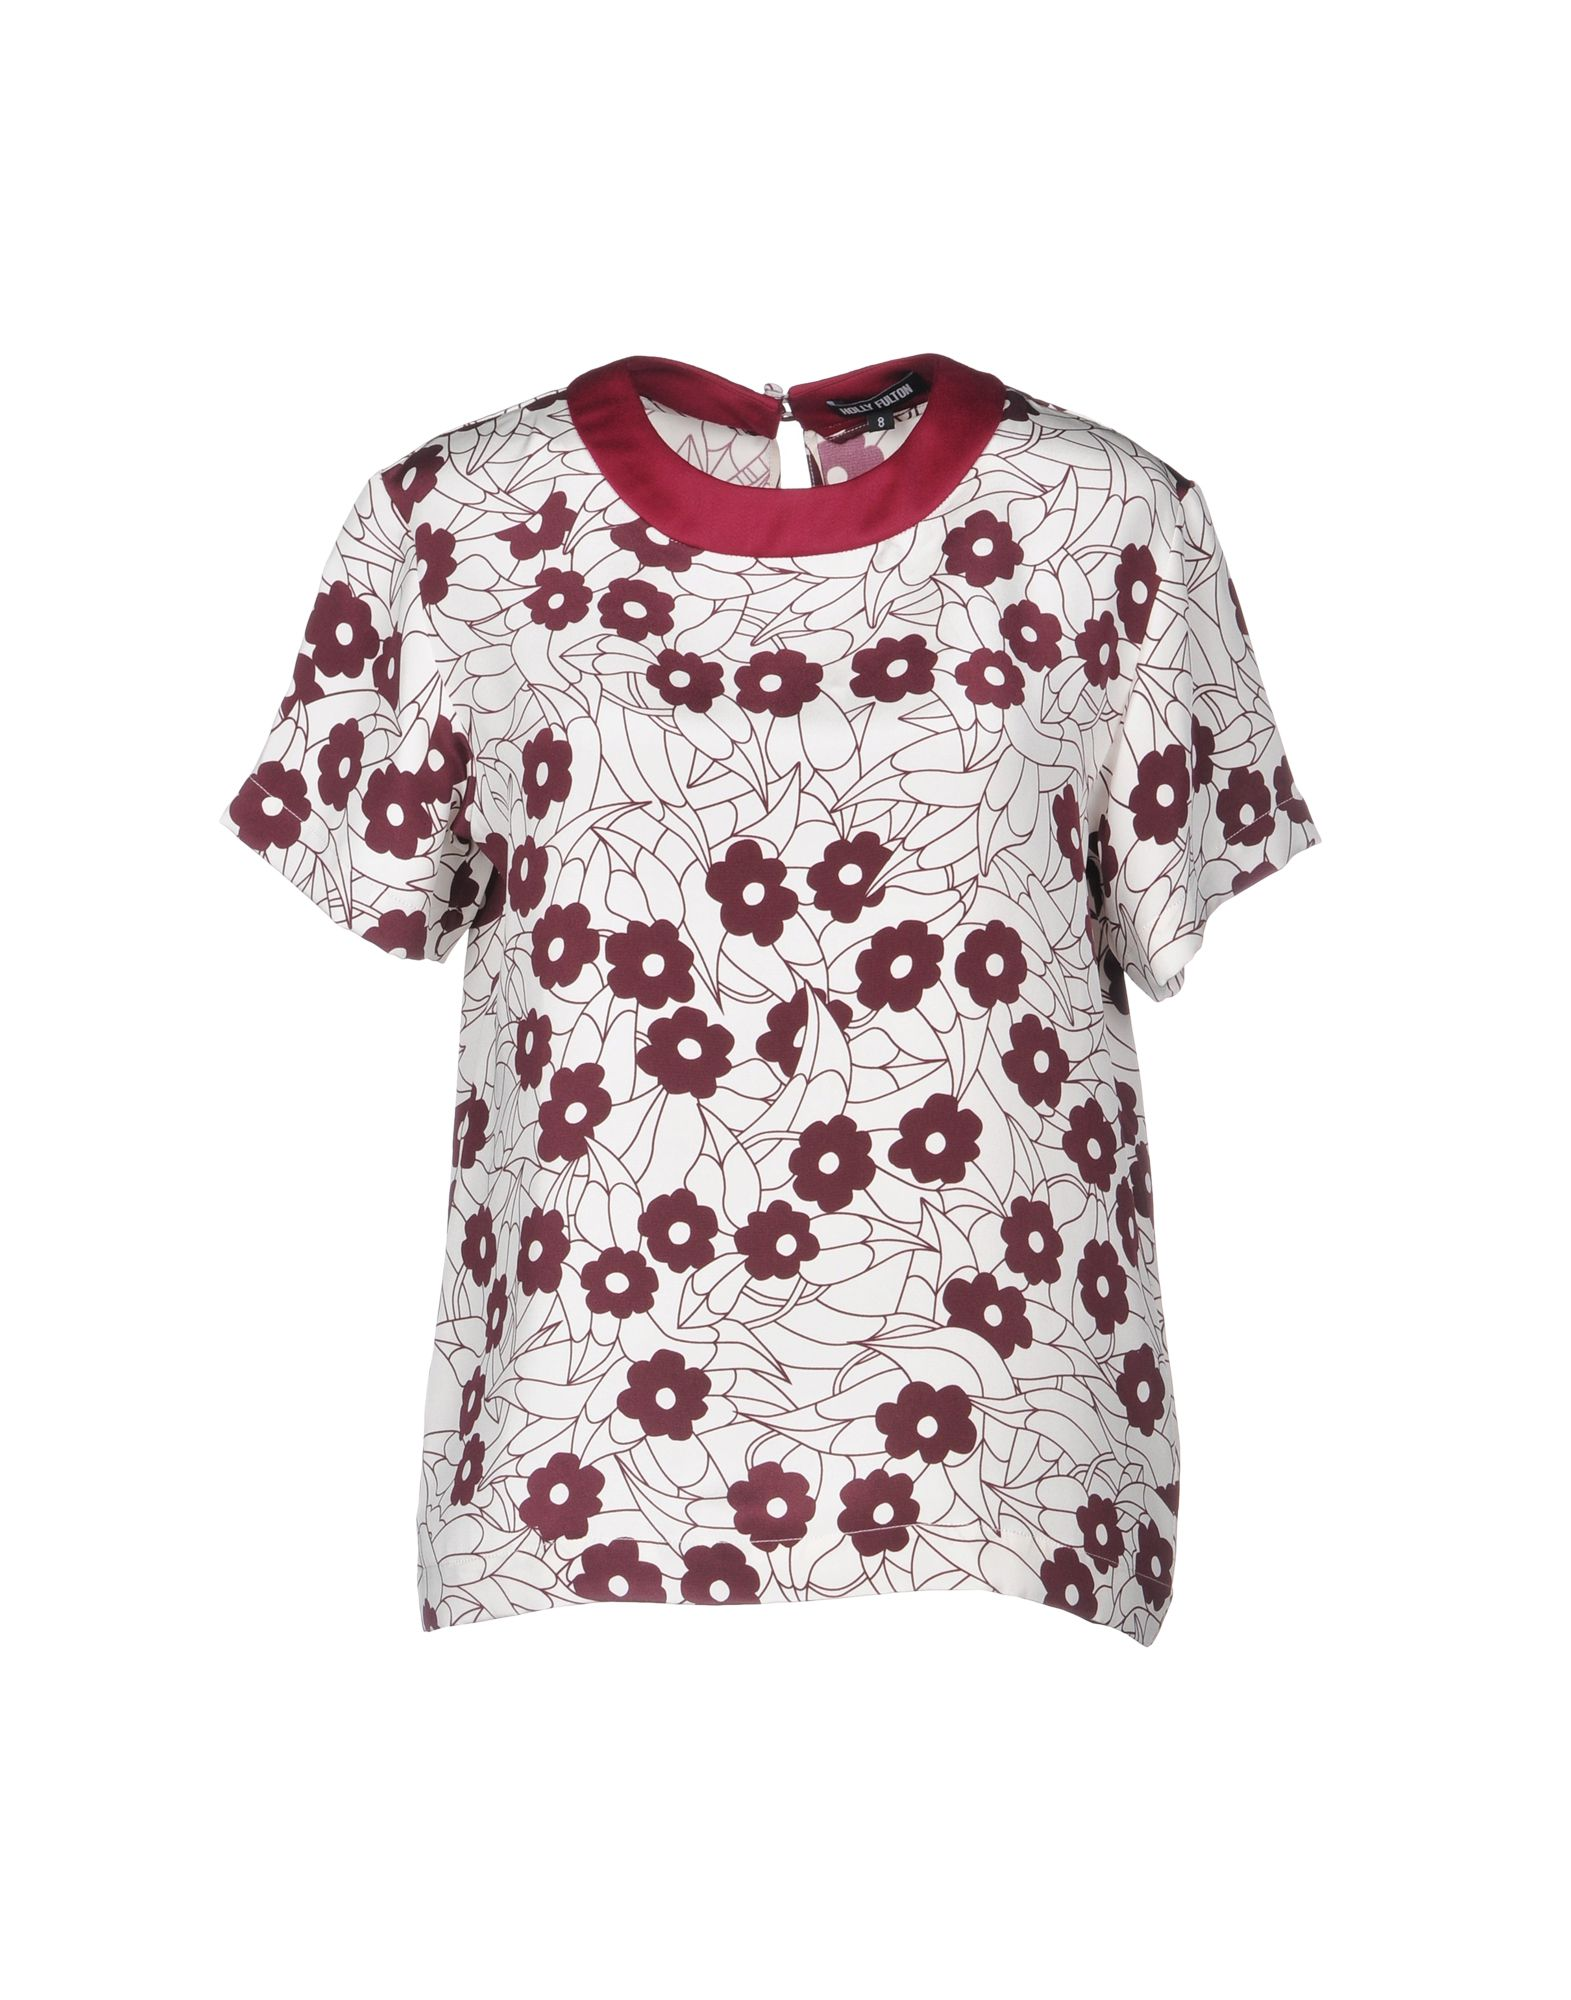 HOLLY FULTON Blouse in Maroon